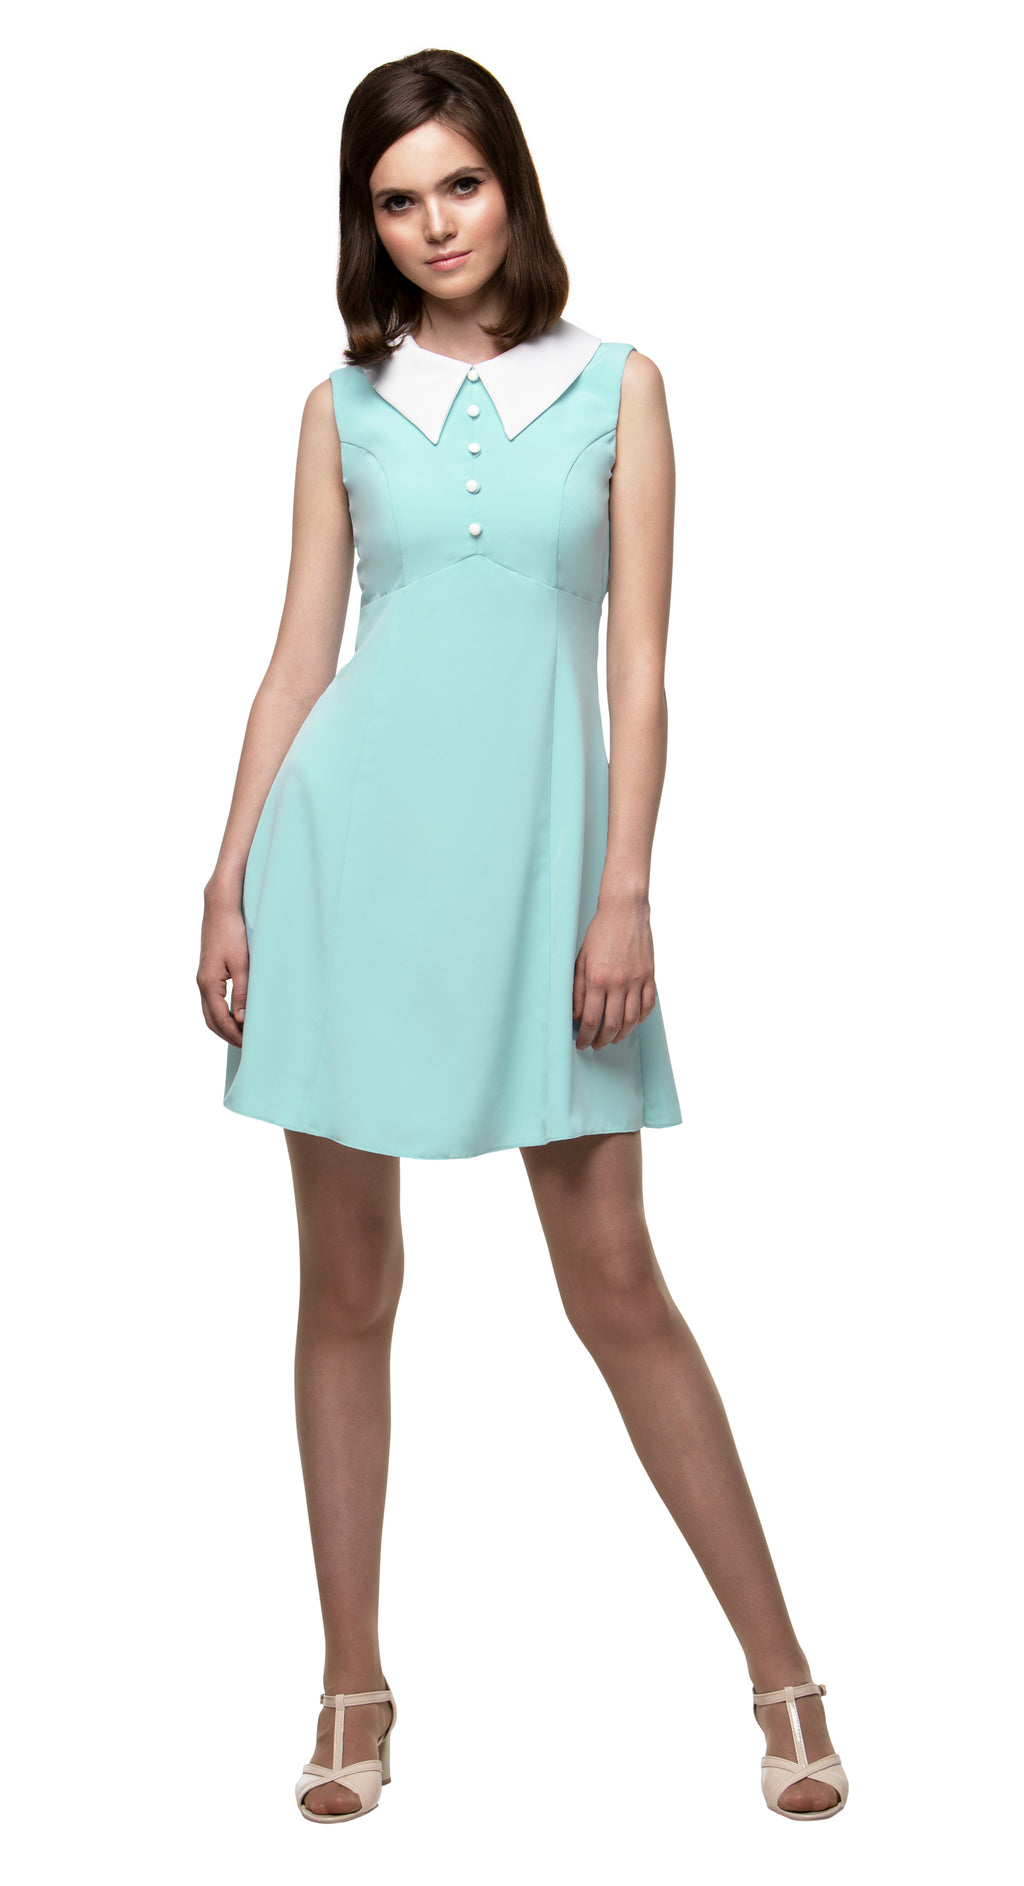 MARMALADE 1960s Style Dress with Collar in Mint Green